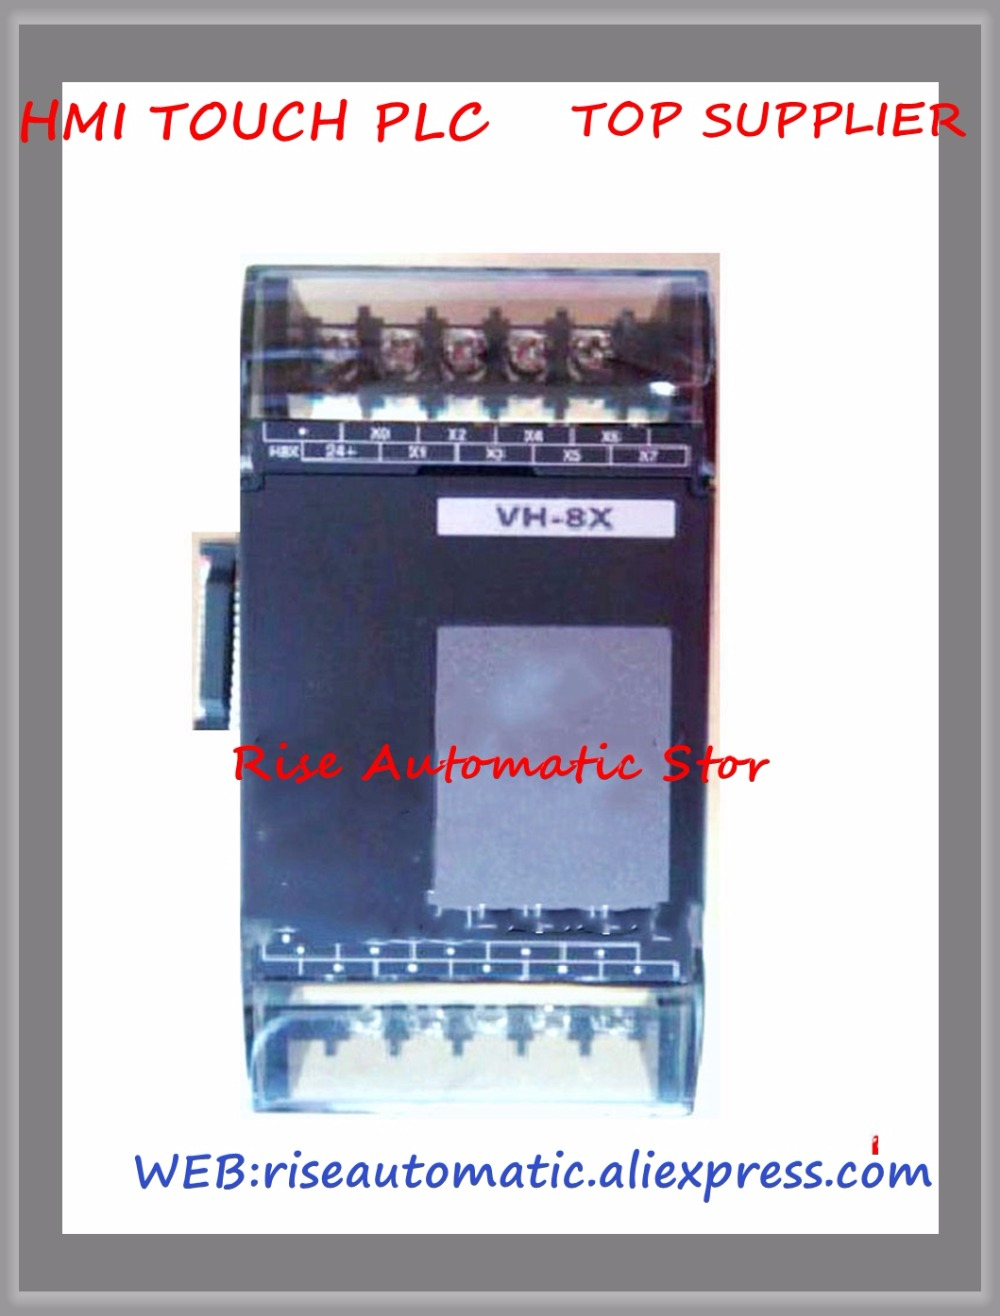 VH-8X PLC New Original 24VDC 8 point input Expansion Module new original programmable logic controller vh 16mt di plc 24vdc 16 point input 16 point output connector